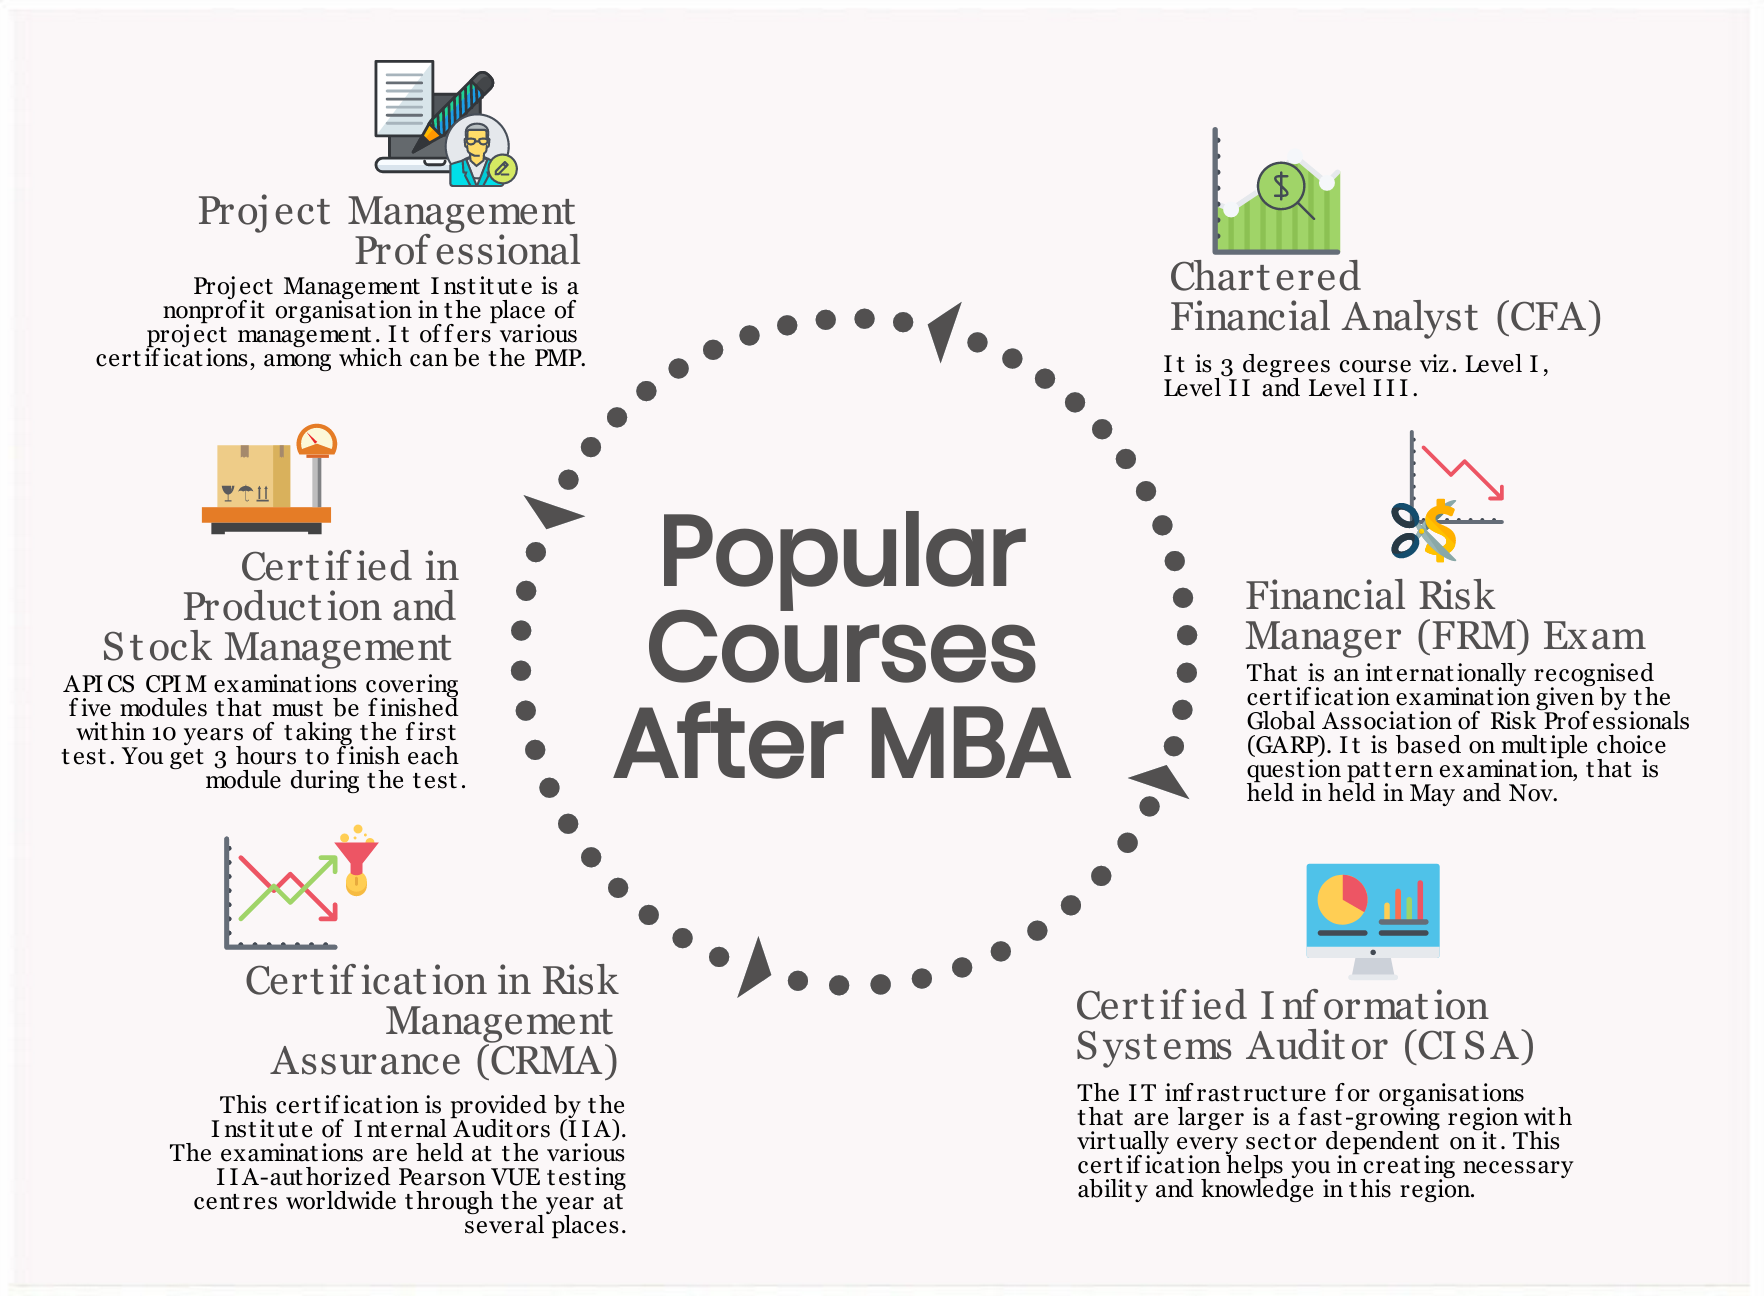 Certification Courses After MBA, List of Certificate Courses